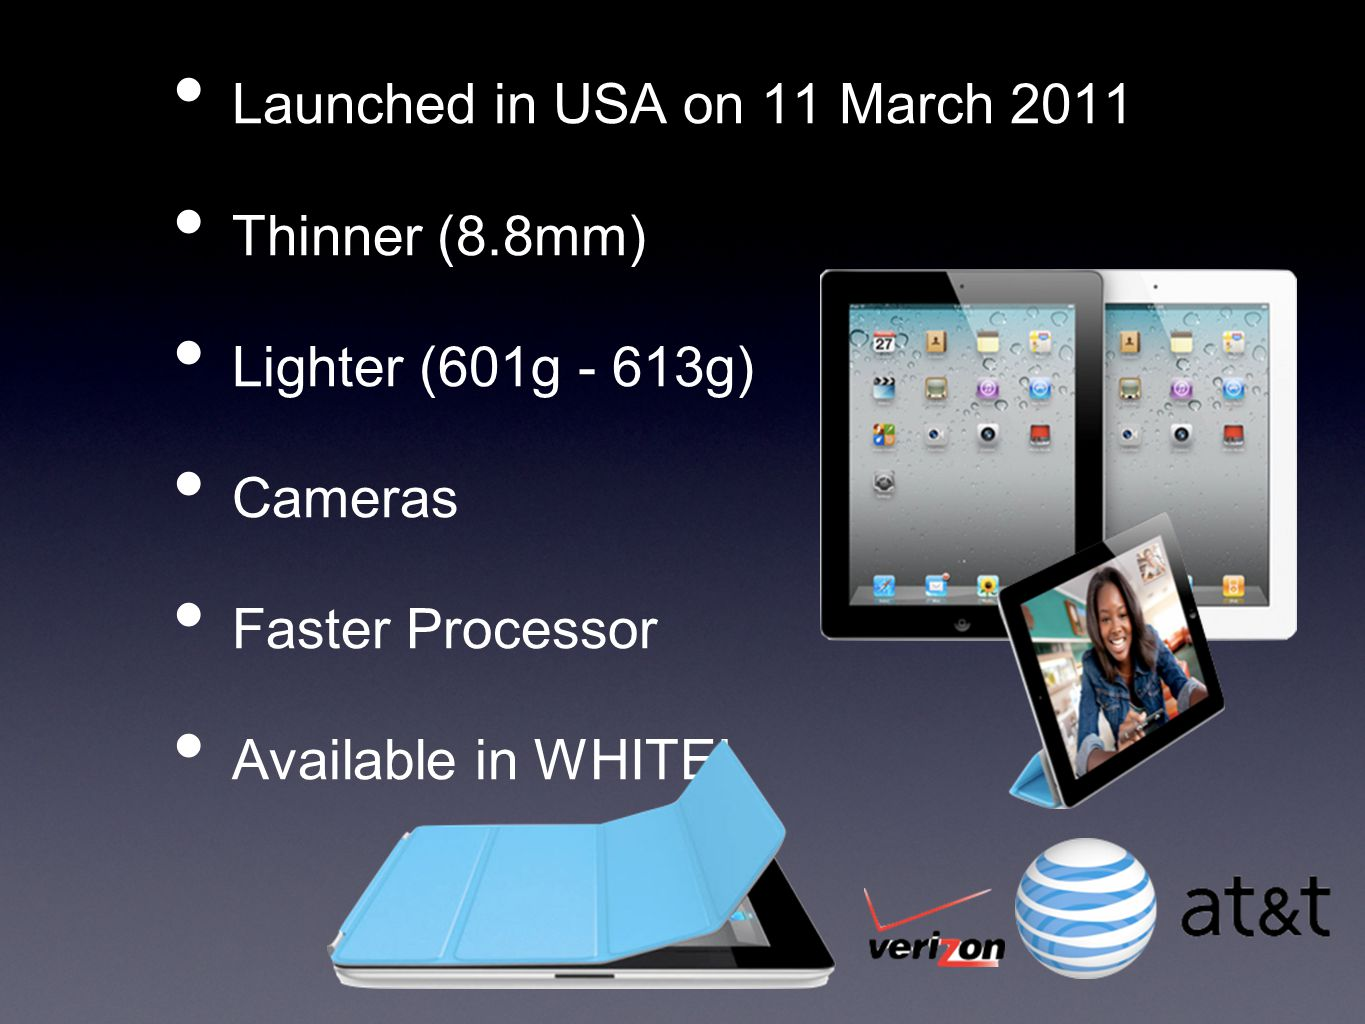 Launched in USA on 11 March 2011 Thinner (8.8mm) Lighter (601g - 613g) Cameras Faster Processor Available in WHITE!